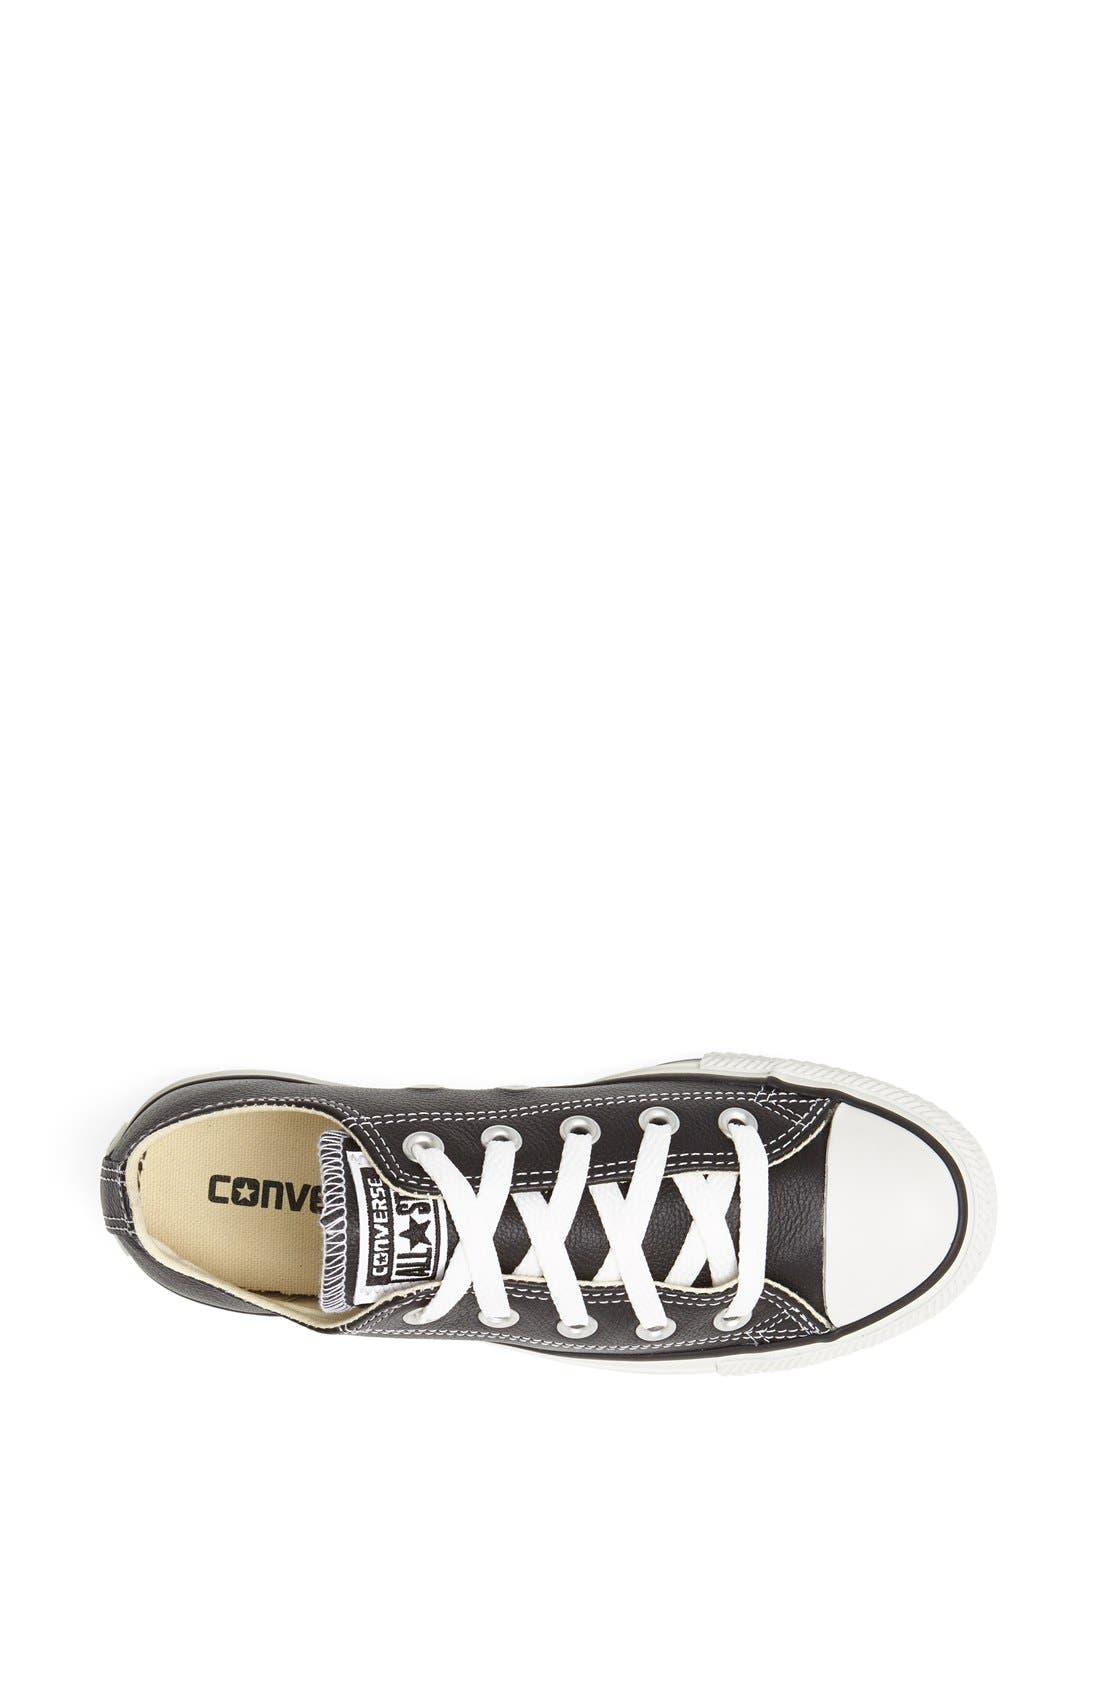 Alternate Image 3  - Converse Chuck Taylor® All Star® Leather Sneaker (Women)